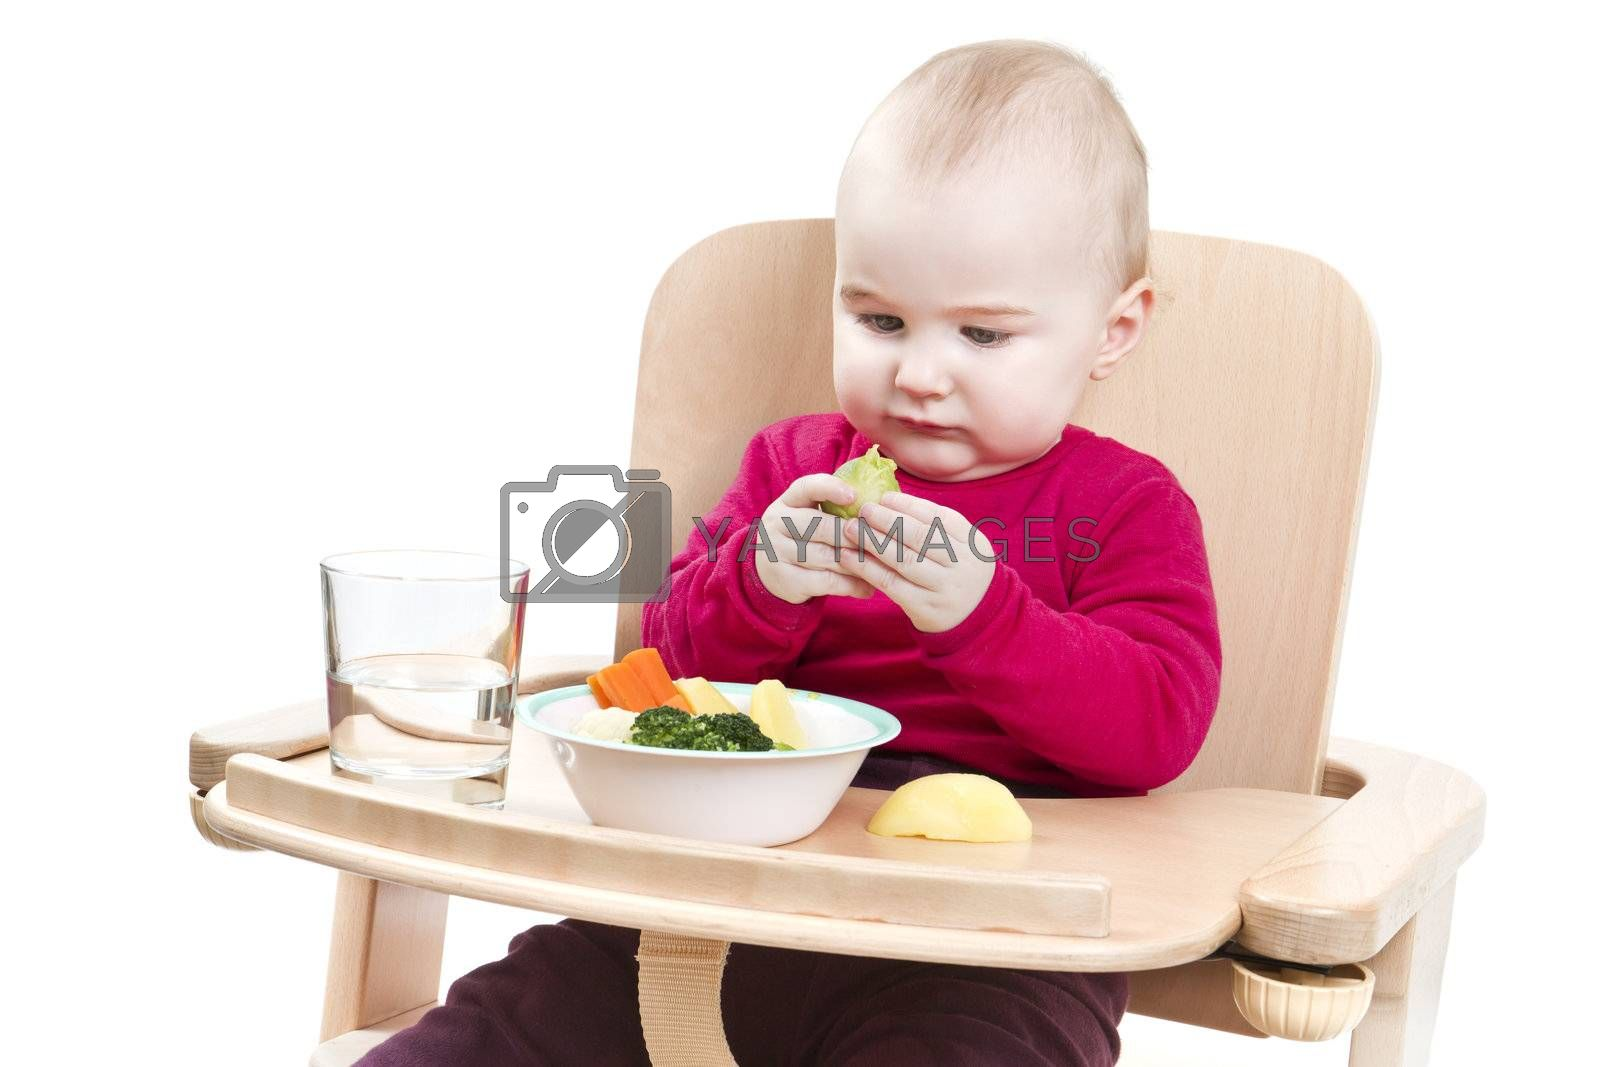 young child in red shirt eating vegetables in wooden high chair.